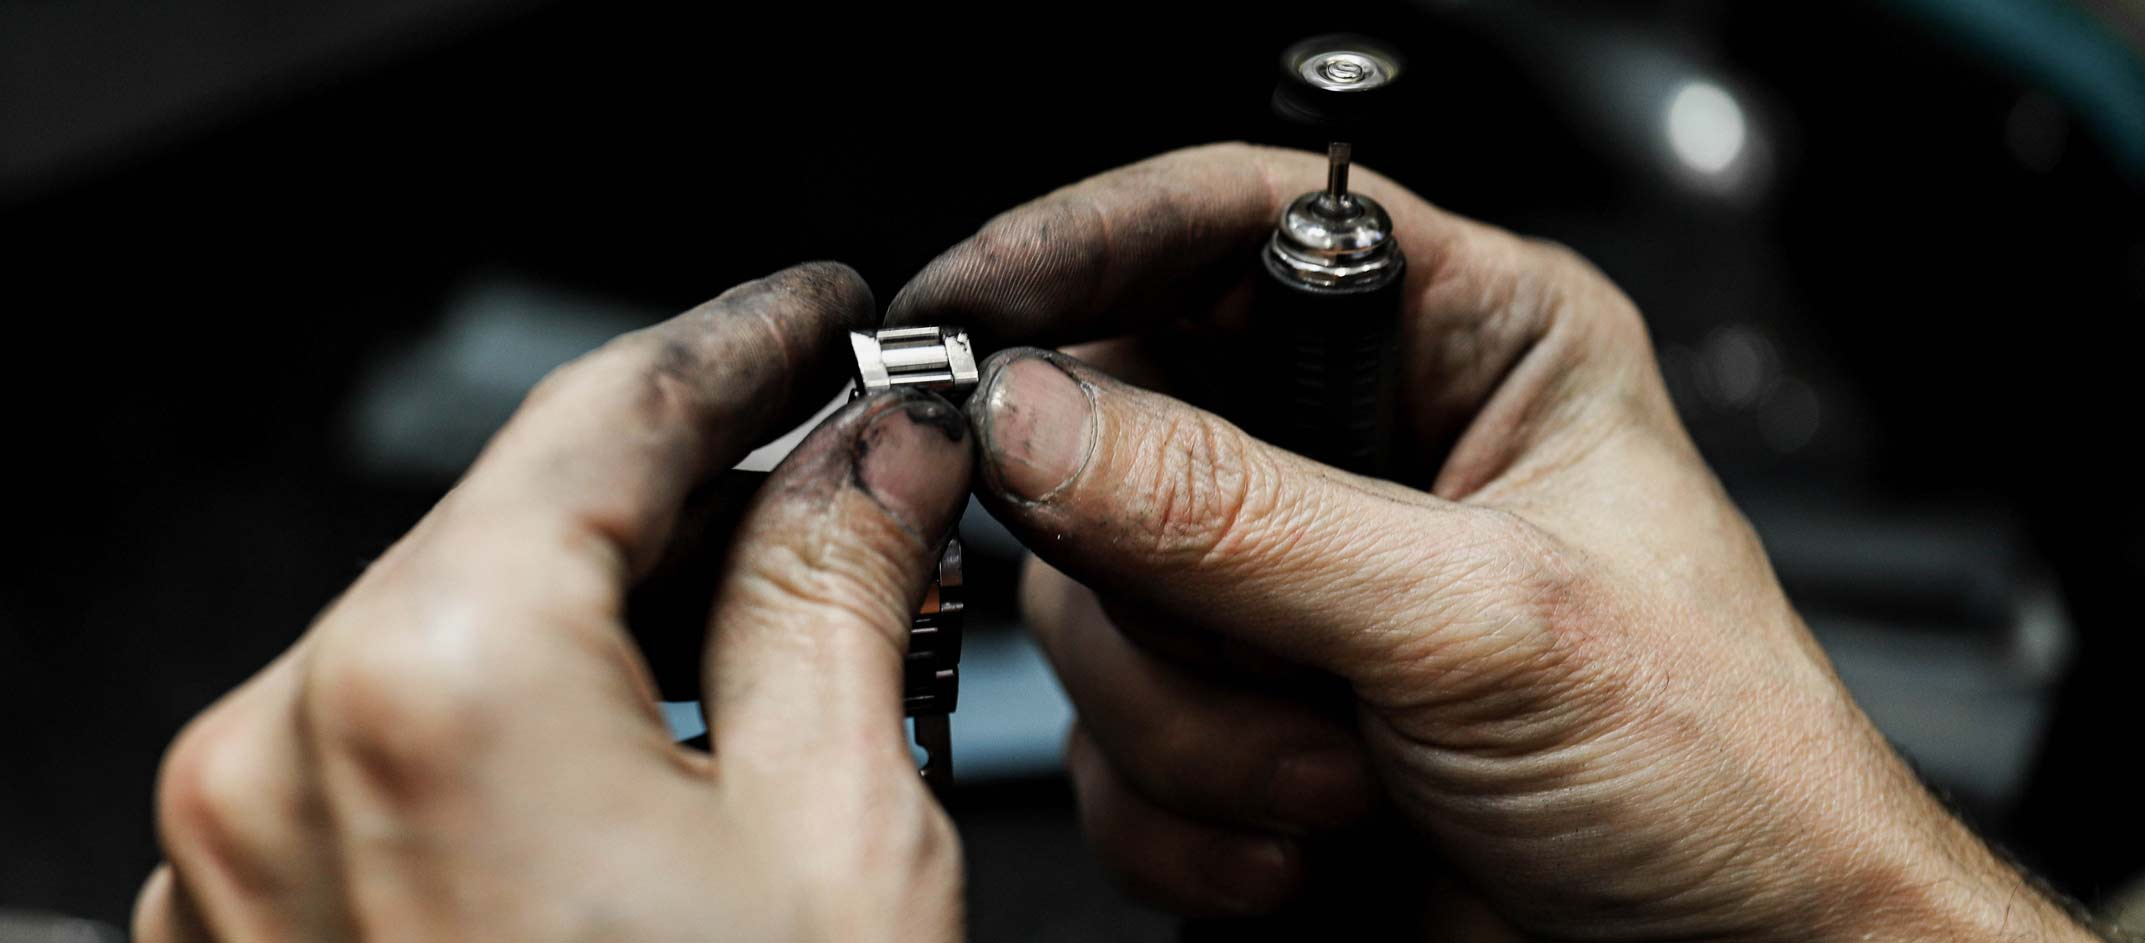 Our Watch Manufactory